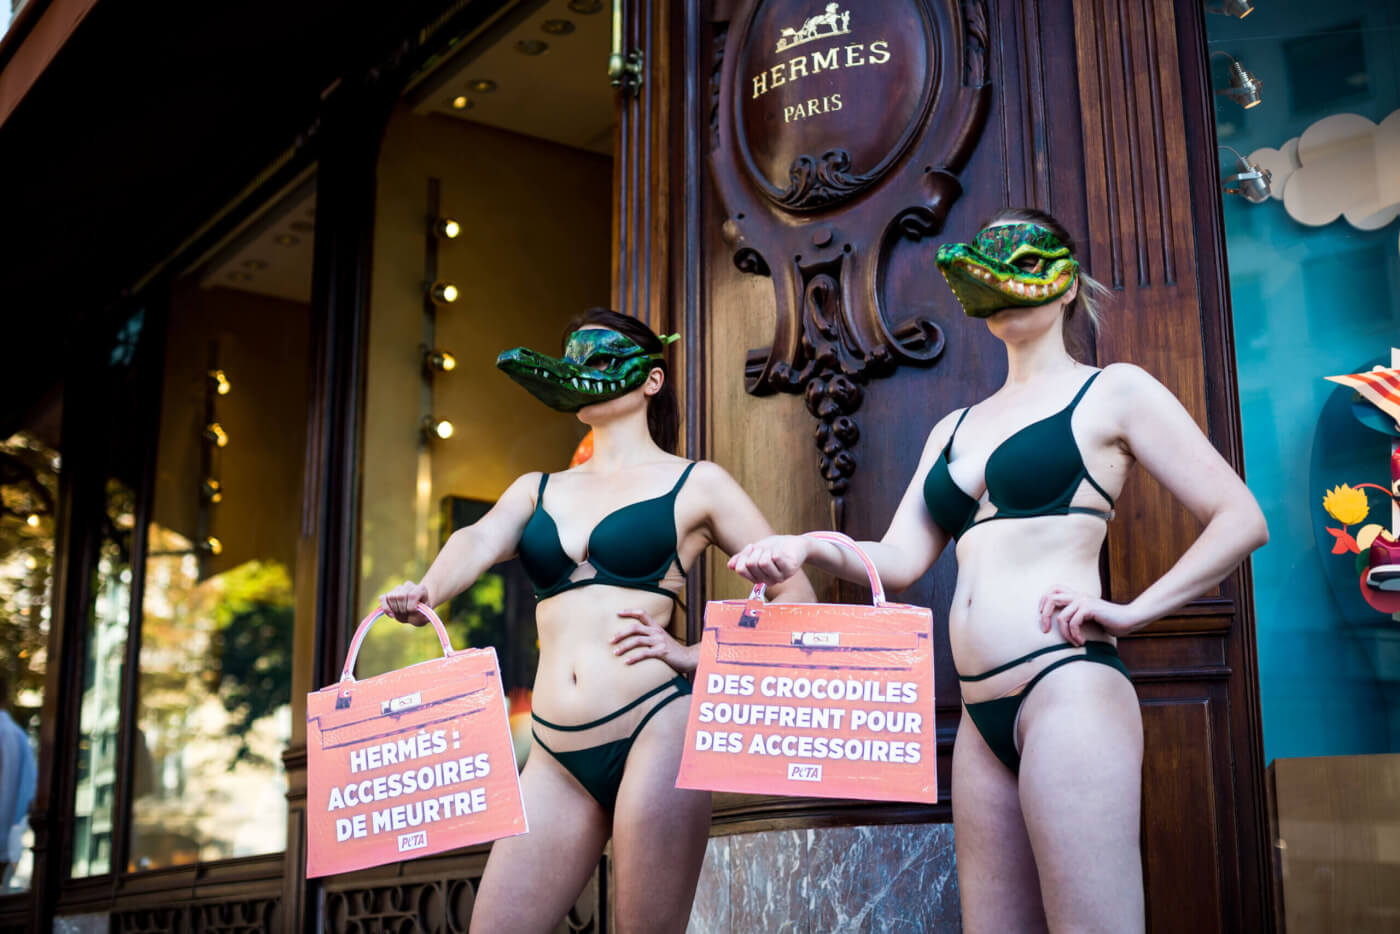 worldwide protests push Hermes to ban exotic skins